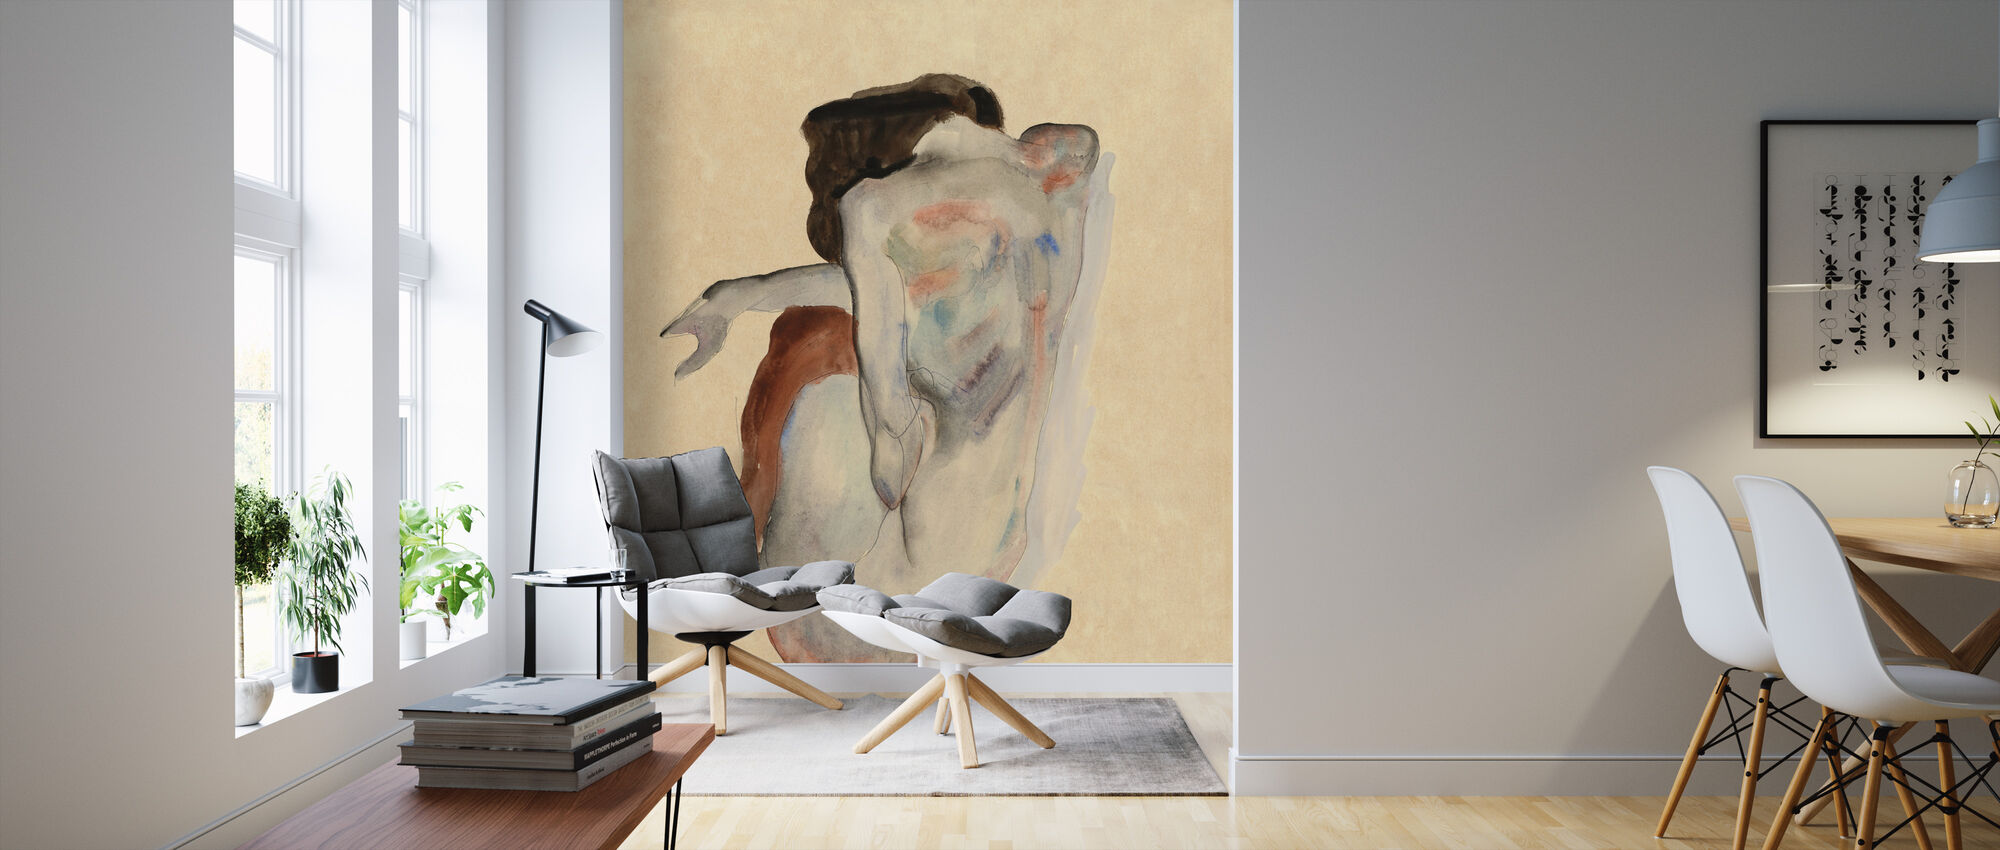 Crouching Nude - Egon Schiele - Wallpaper - Living Room